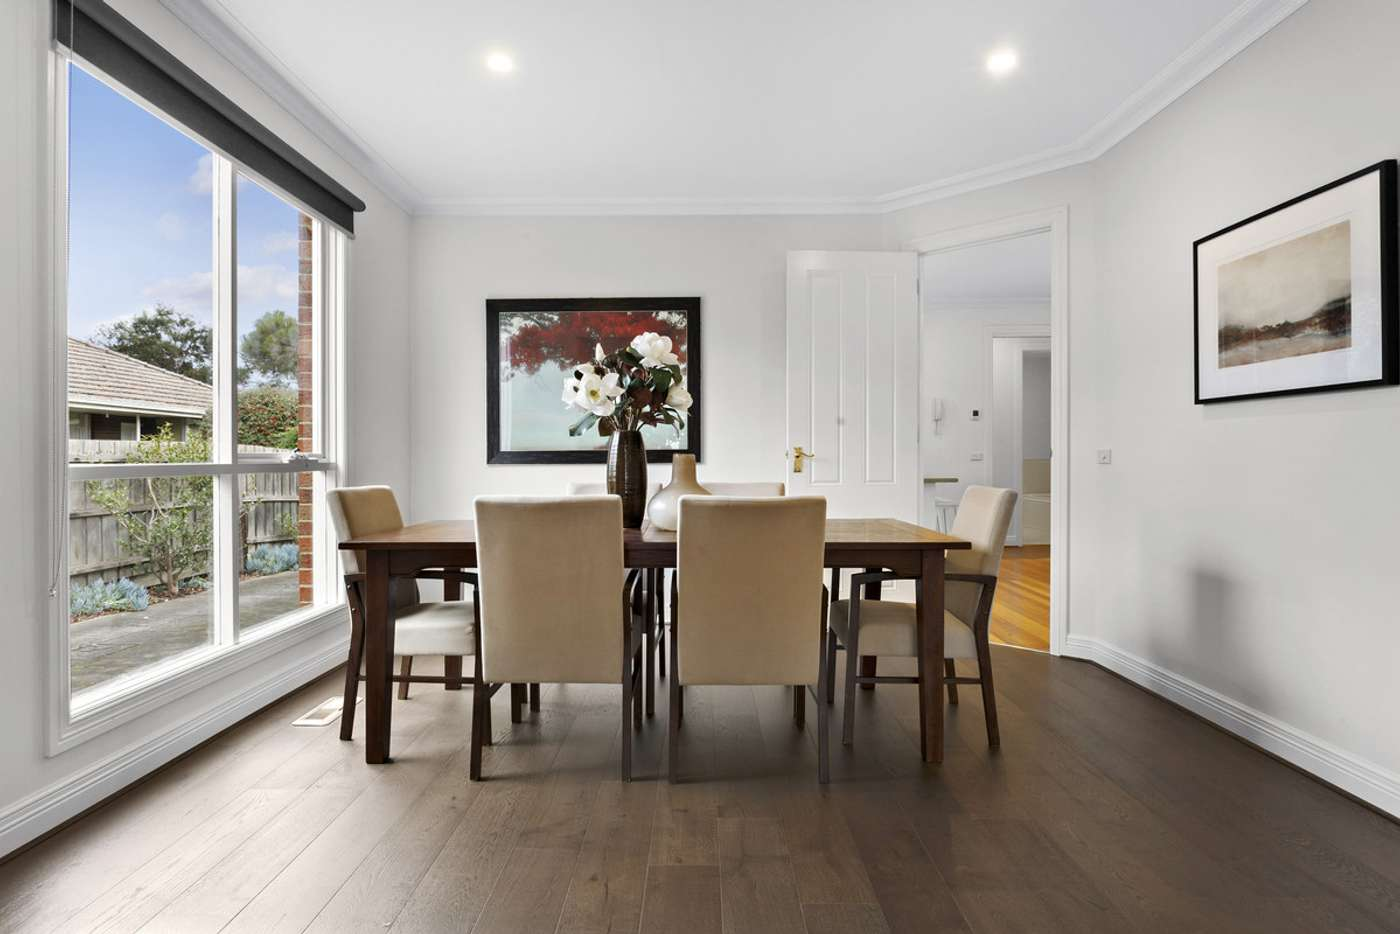 Fifth view of Homely townhouse listing, 1/30 Corhampton Road, Balwyn North VIC 3104